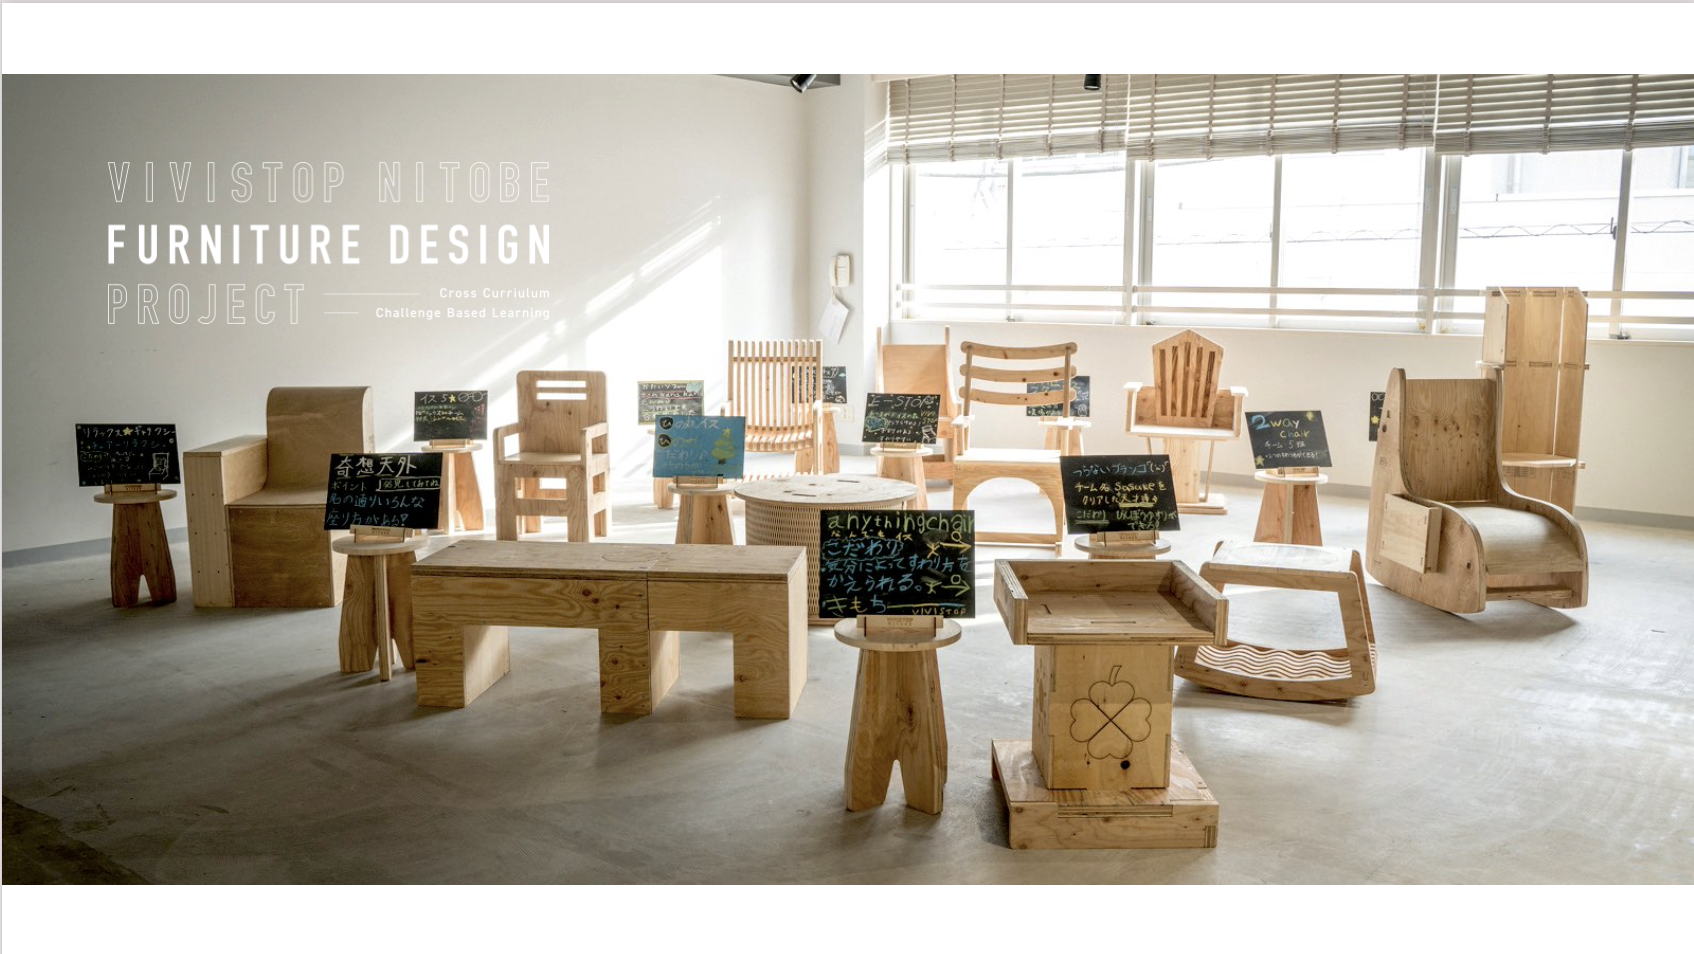 FURNITURE Design Project 展示会開催します